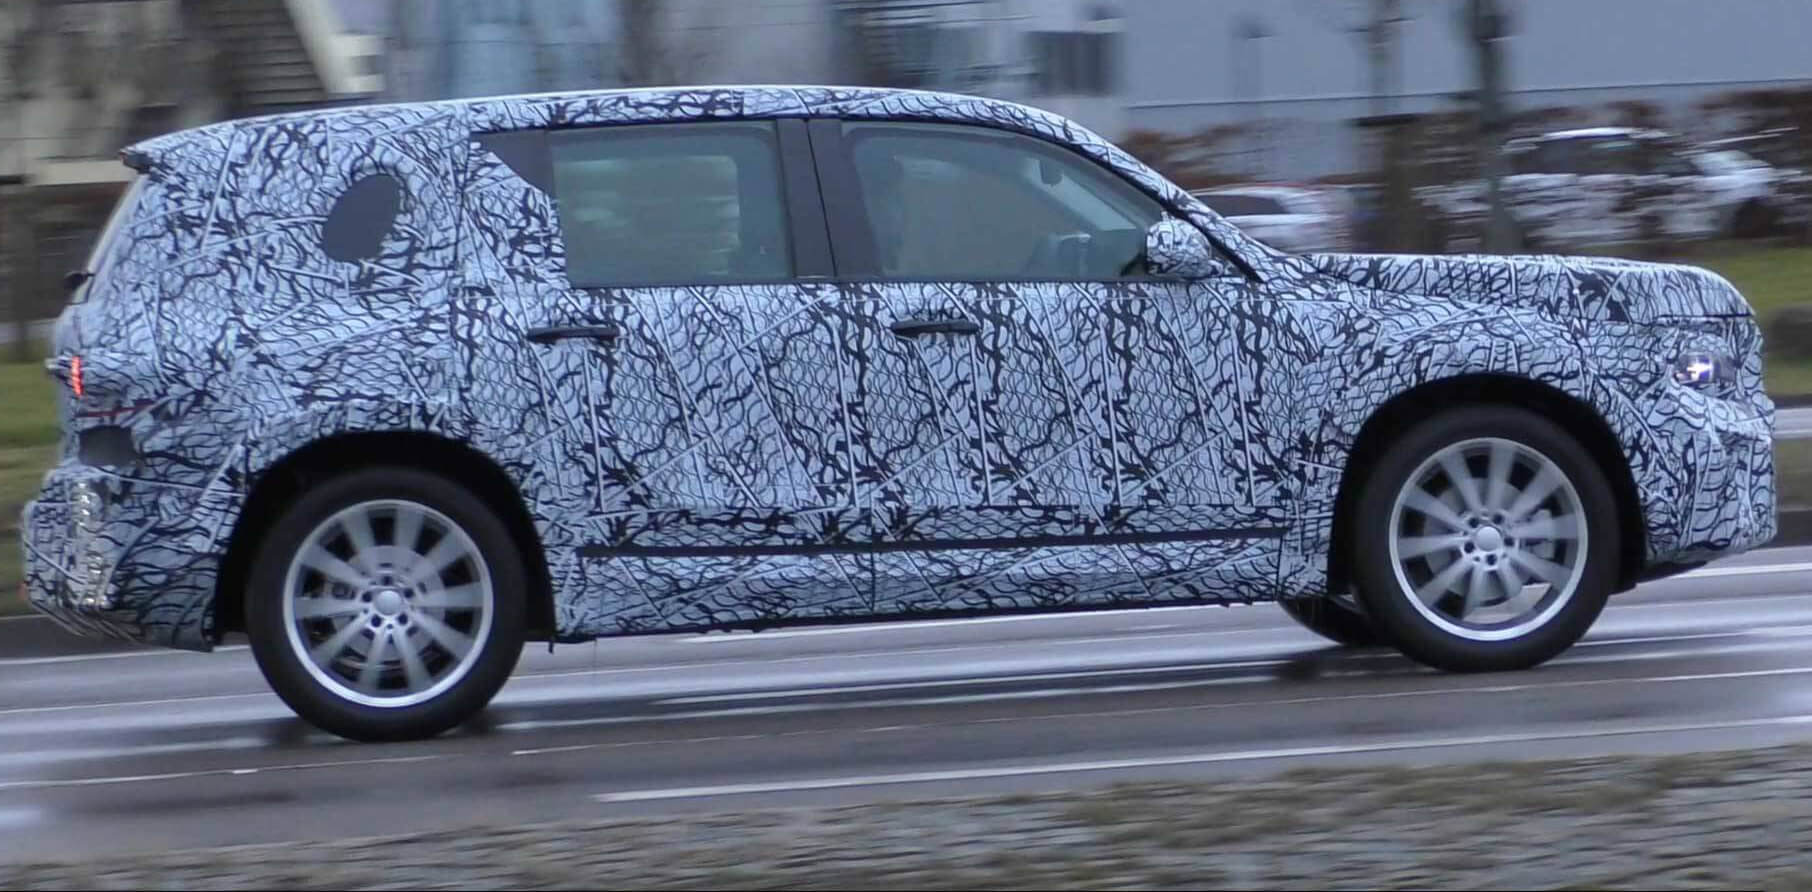 The new Mercedes-Benz GLB Class SUV Prototype On The Road